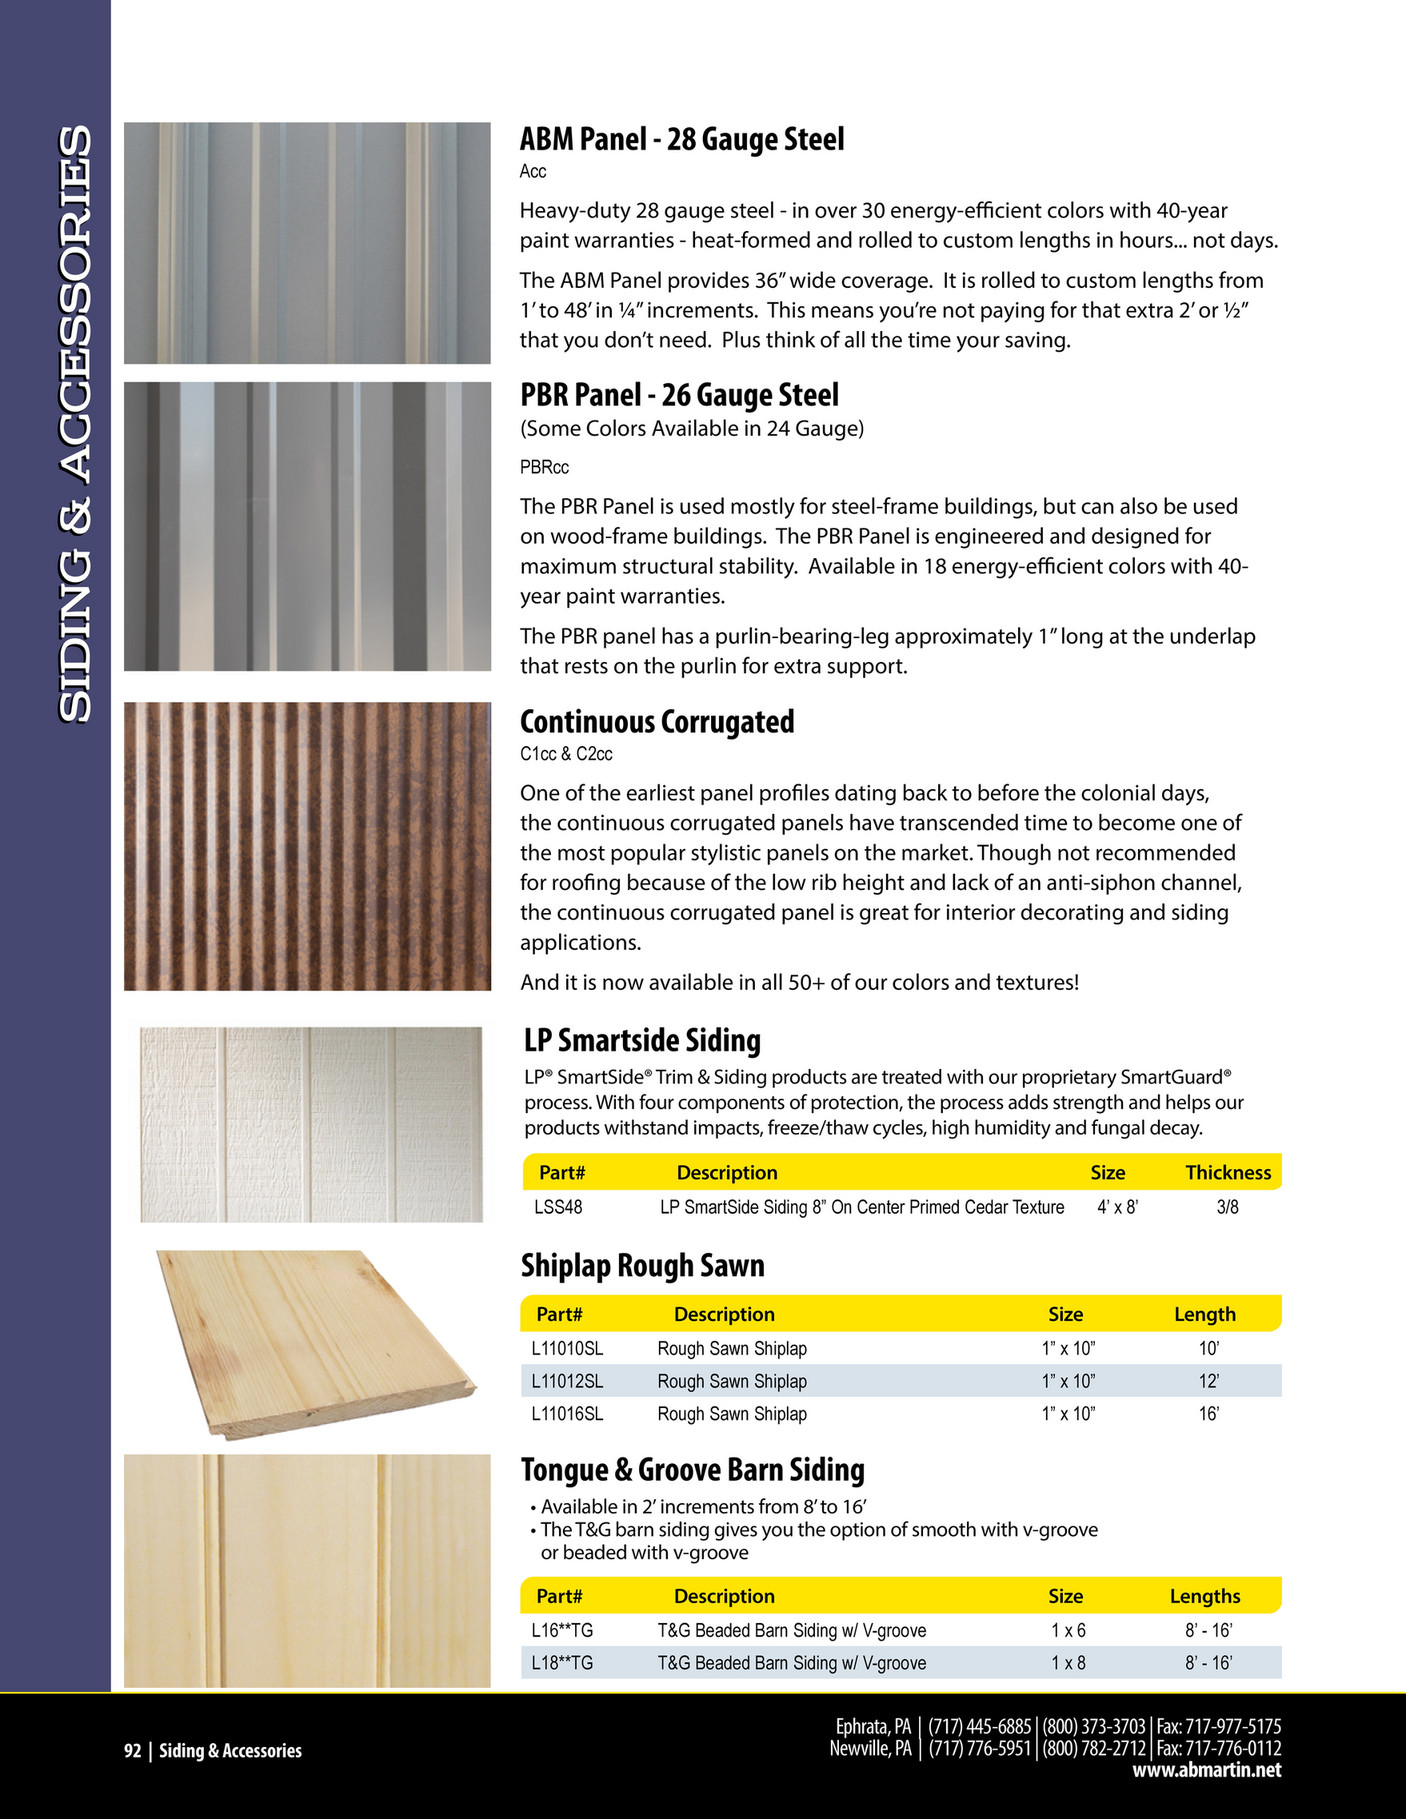 A B Martin Roofing Supply A B Martin Product Catalog 2020 Page 92 93 Created With Publitas Com